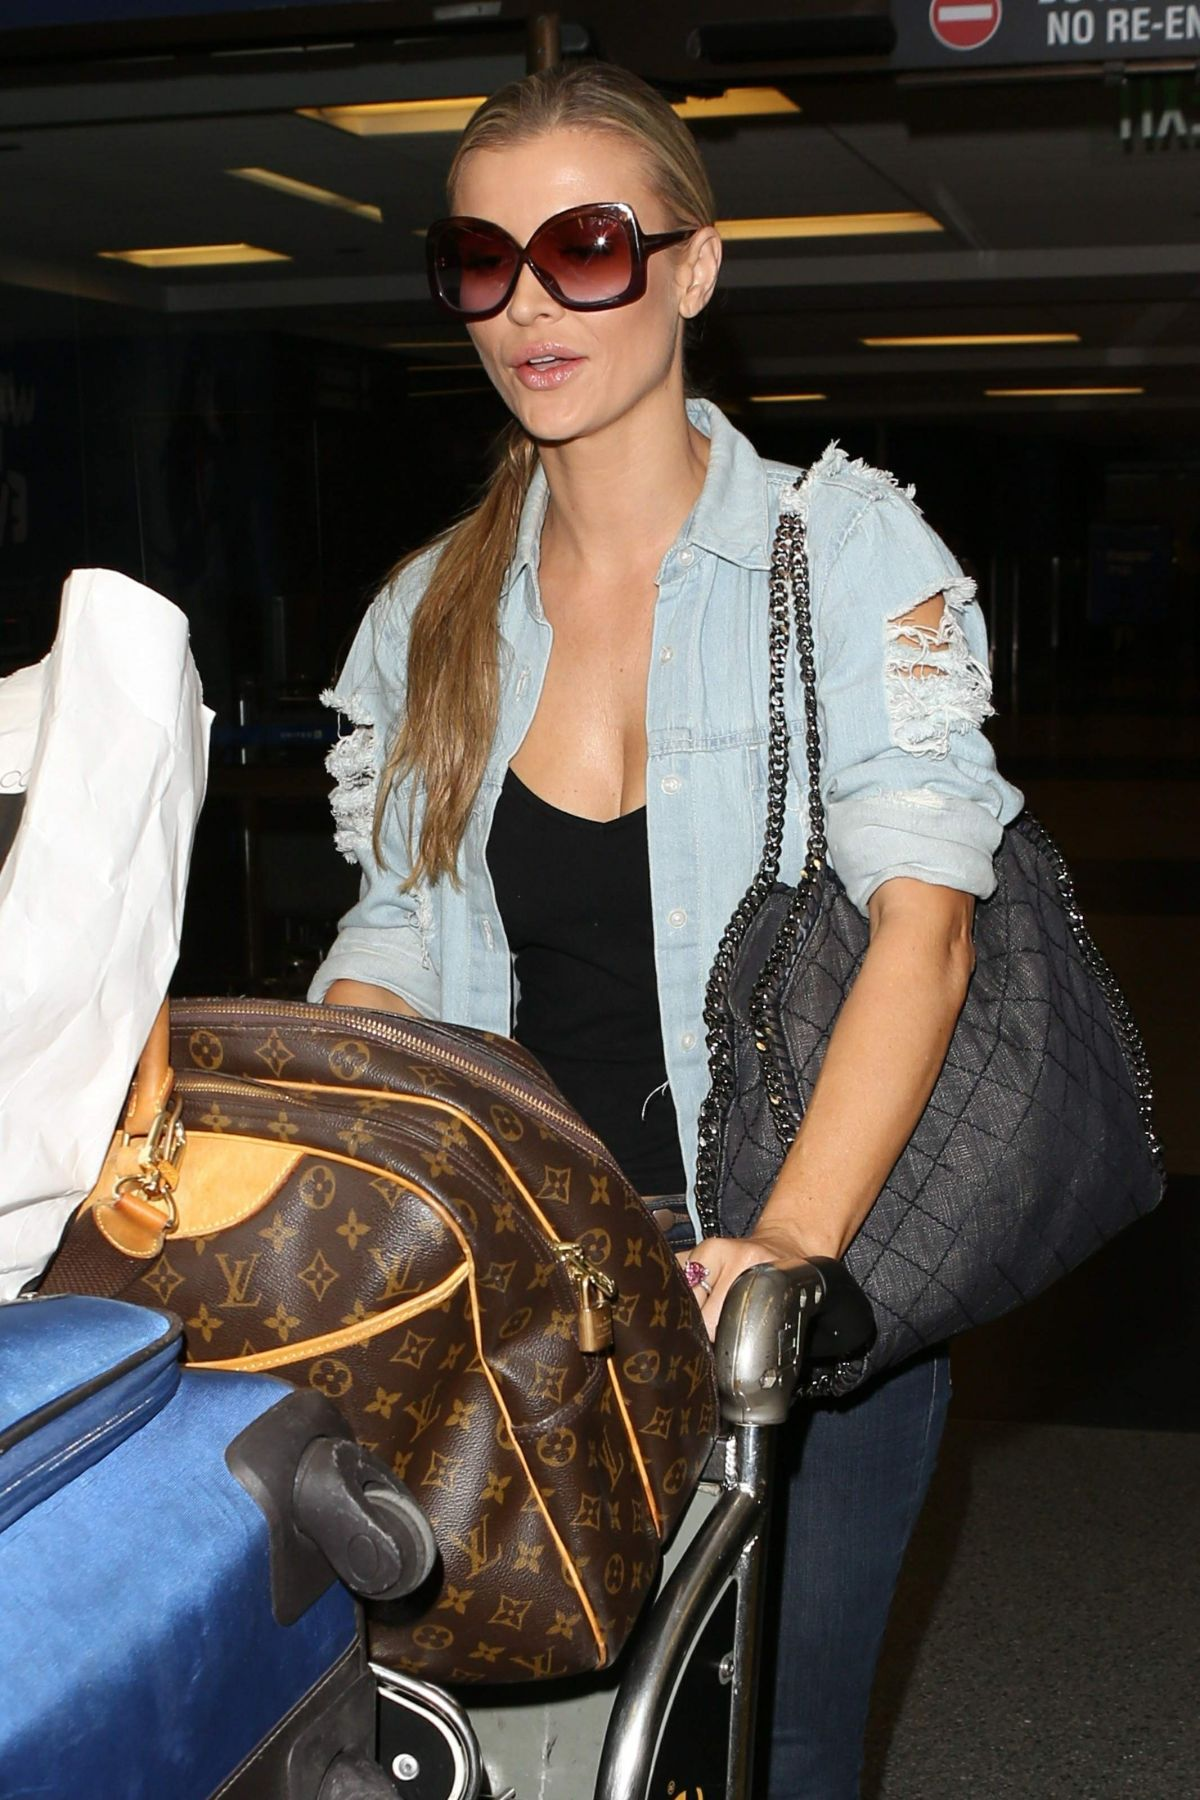 Joanna Krupa At LAX International Airport, Los Angeles   joanna-krupa-at-lax-international-airport-los-angeles_8